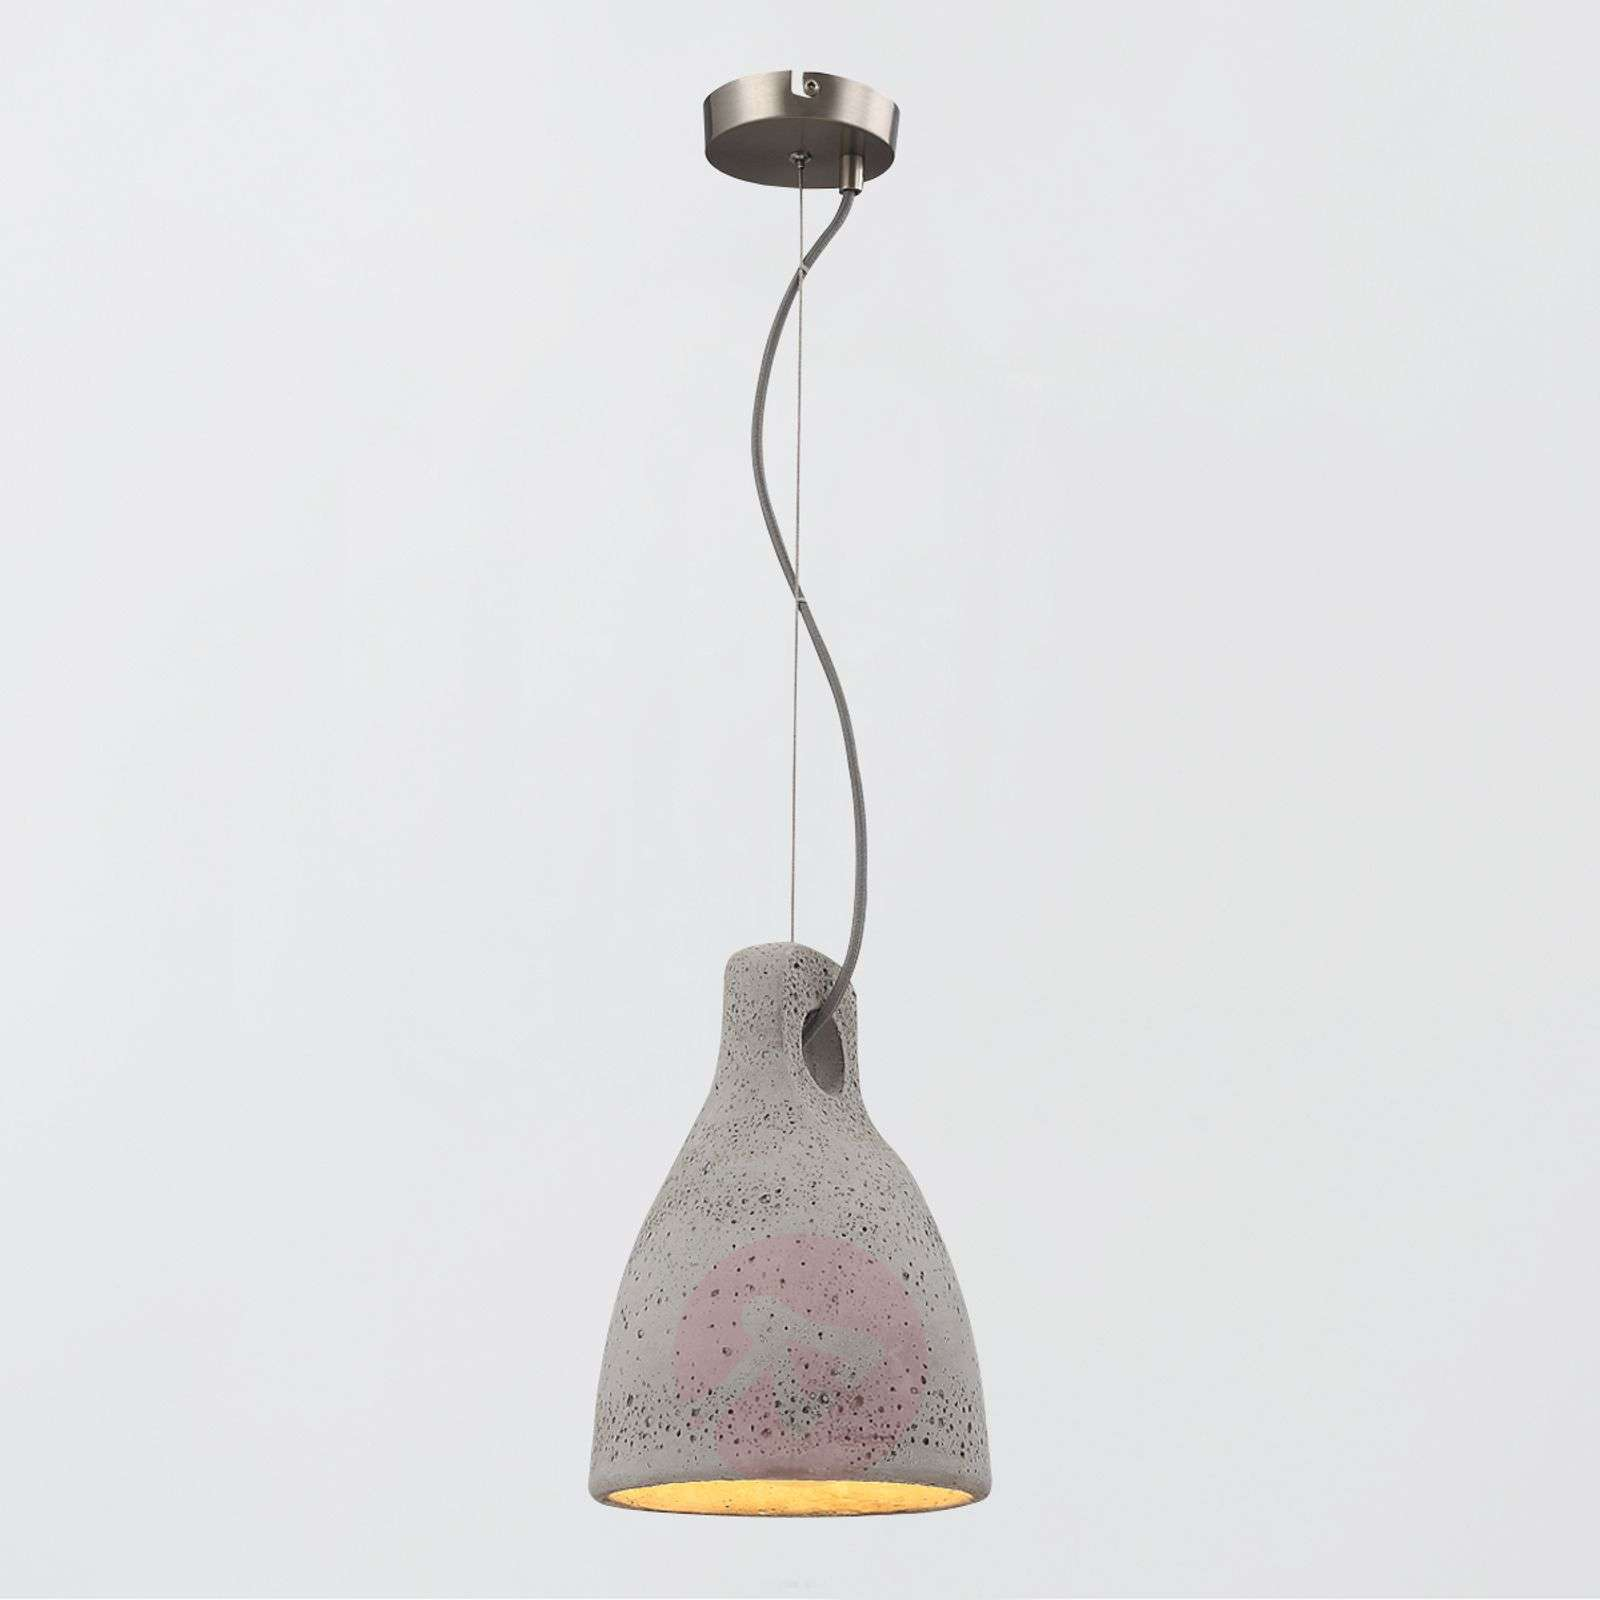 varaluz concrete pendant products rsz geostar mini